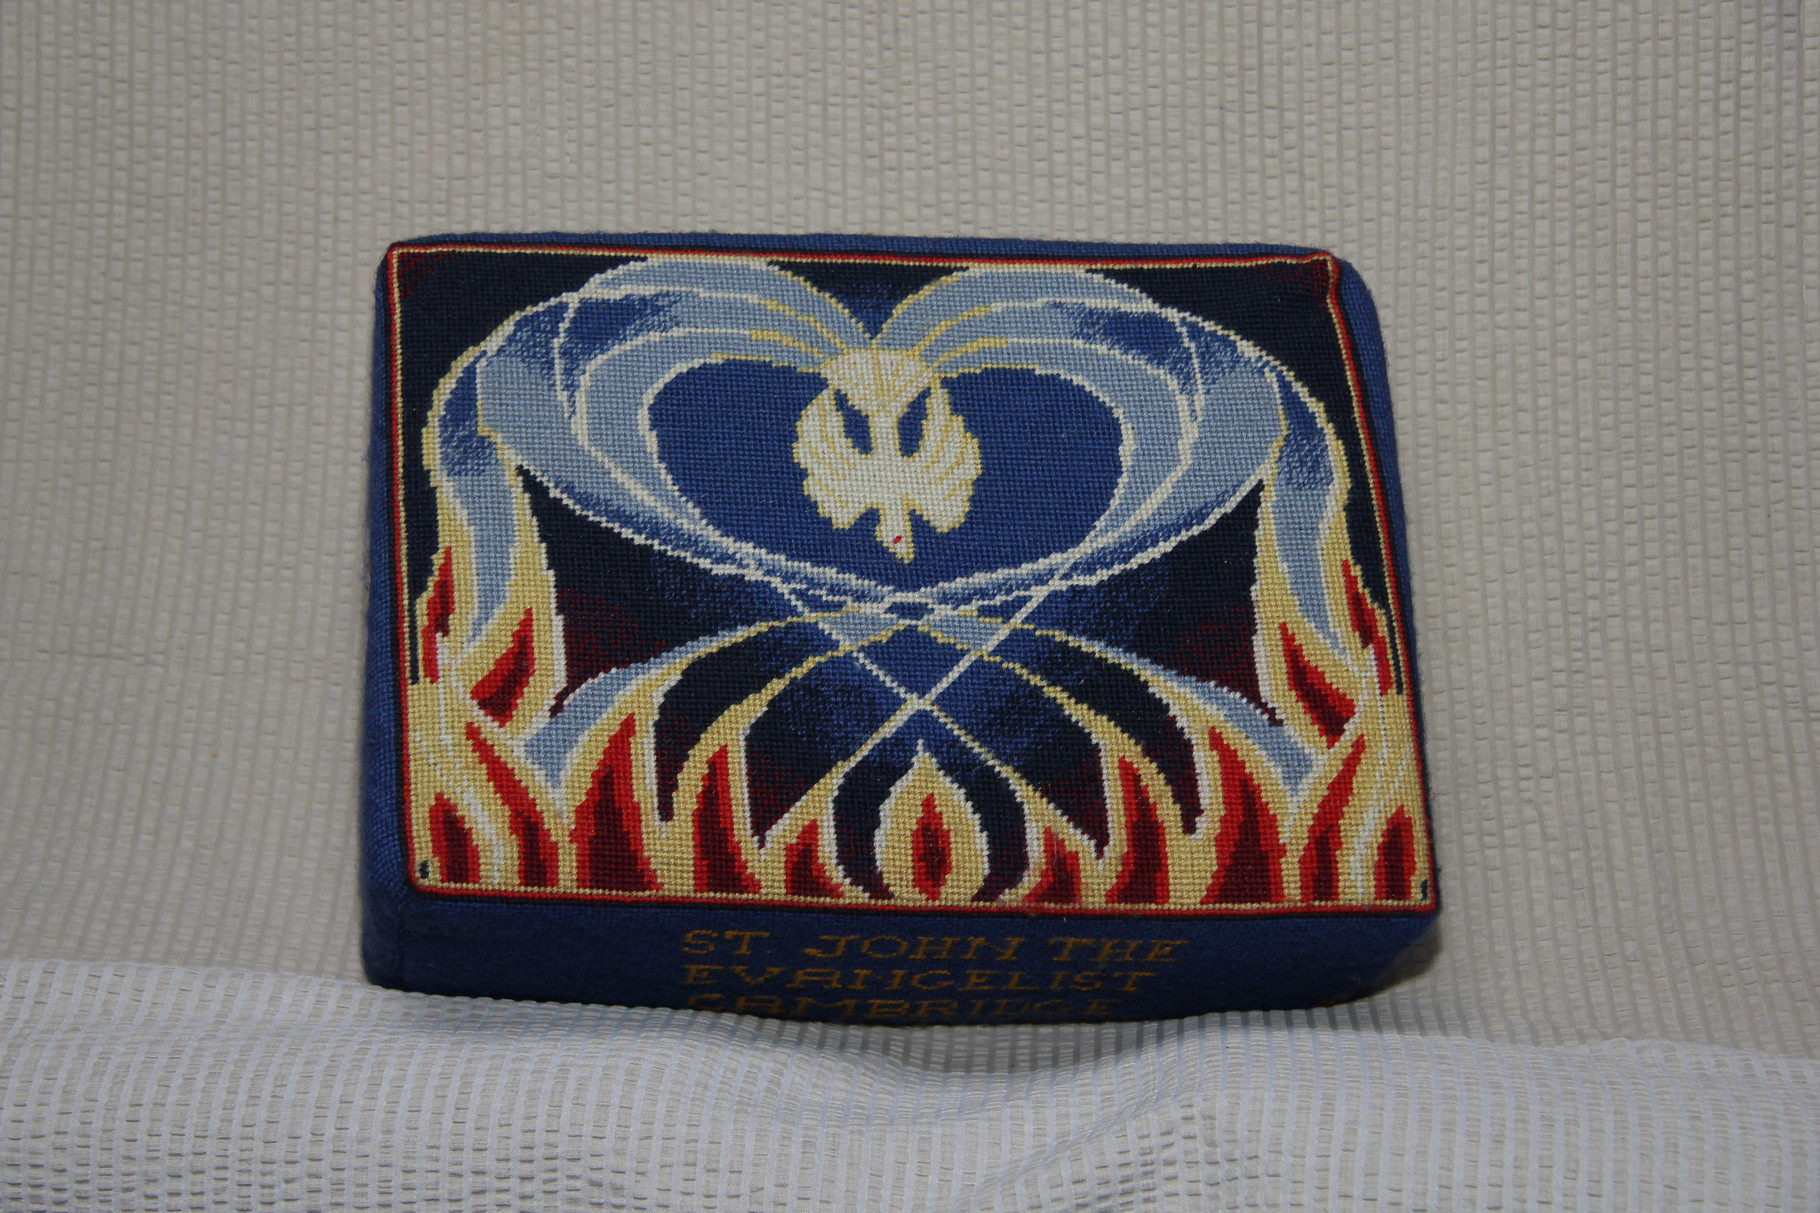 25. Holy Spirit – designed and worked by Rosalind Jones